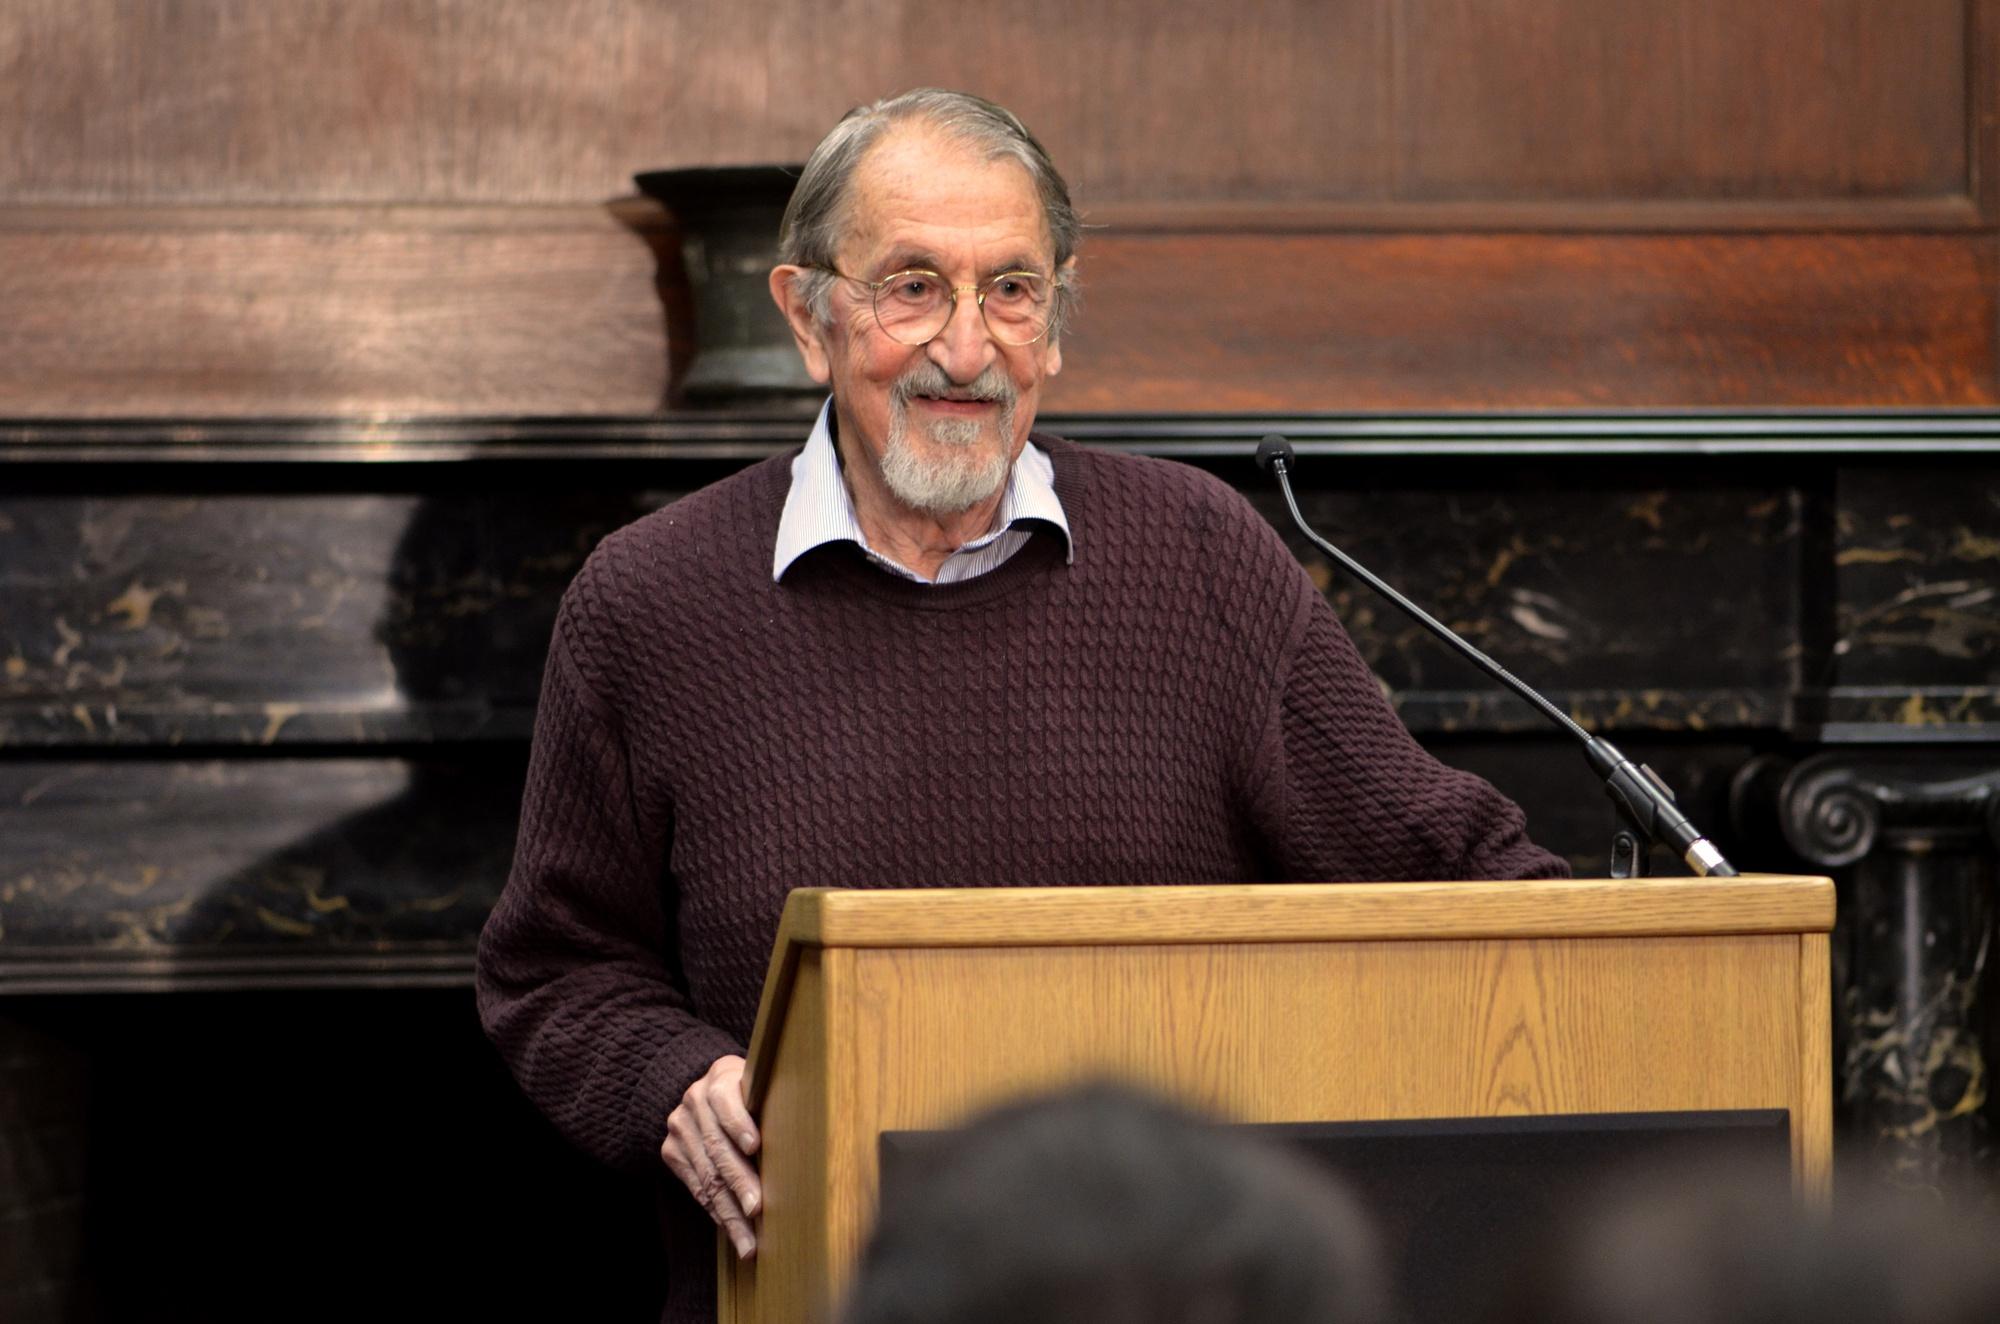 Chemistry professor emeritus Martin Karplus '51 speaks to the media in the Harvard University Chemistry Library on Wednesday, just hours after the Royal Swedish Academy of Sciences announced that he had won the Nobel Prize in chemistry.